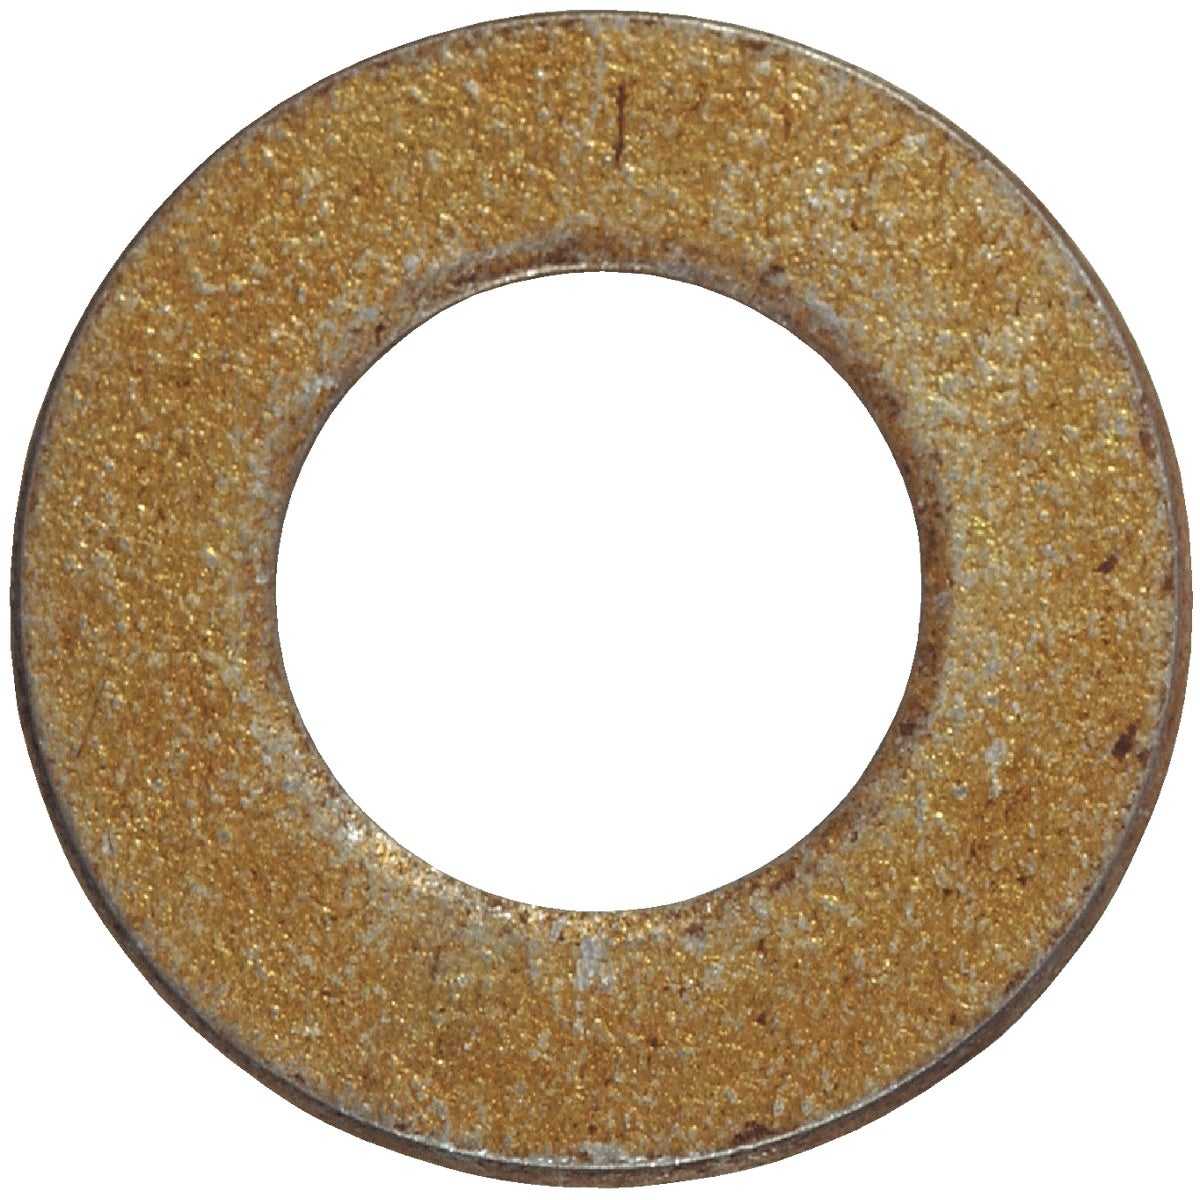 "1"" SAE FLAT WASHER"